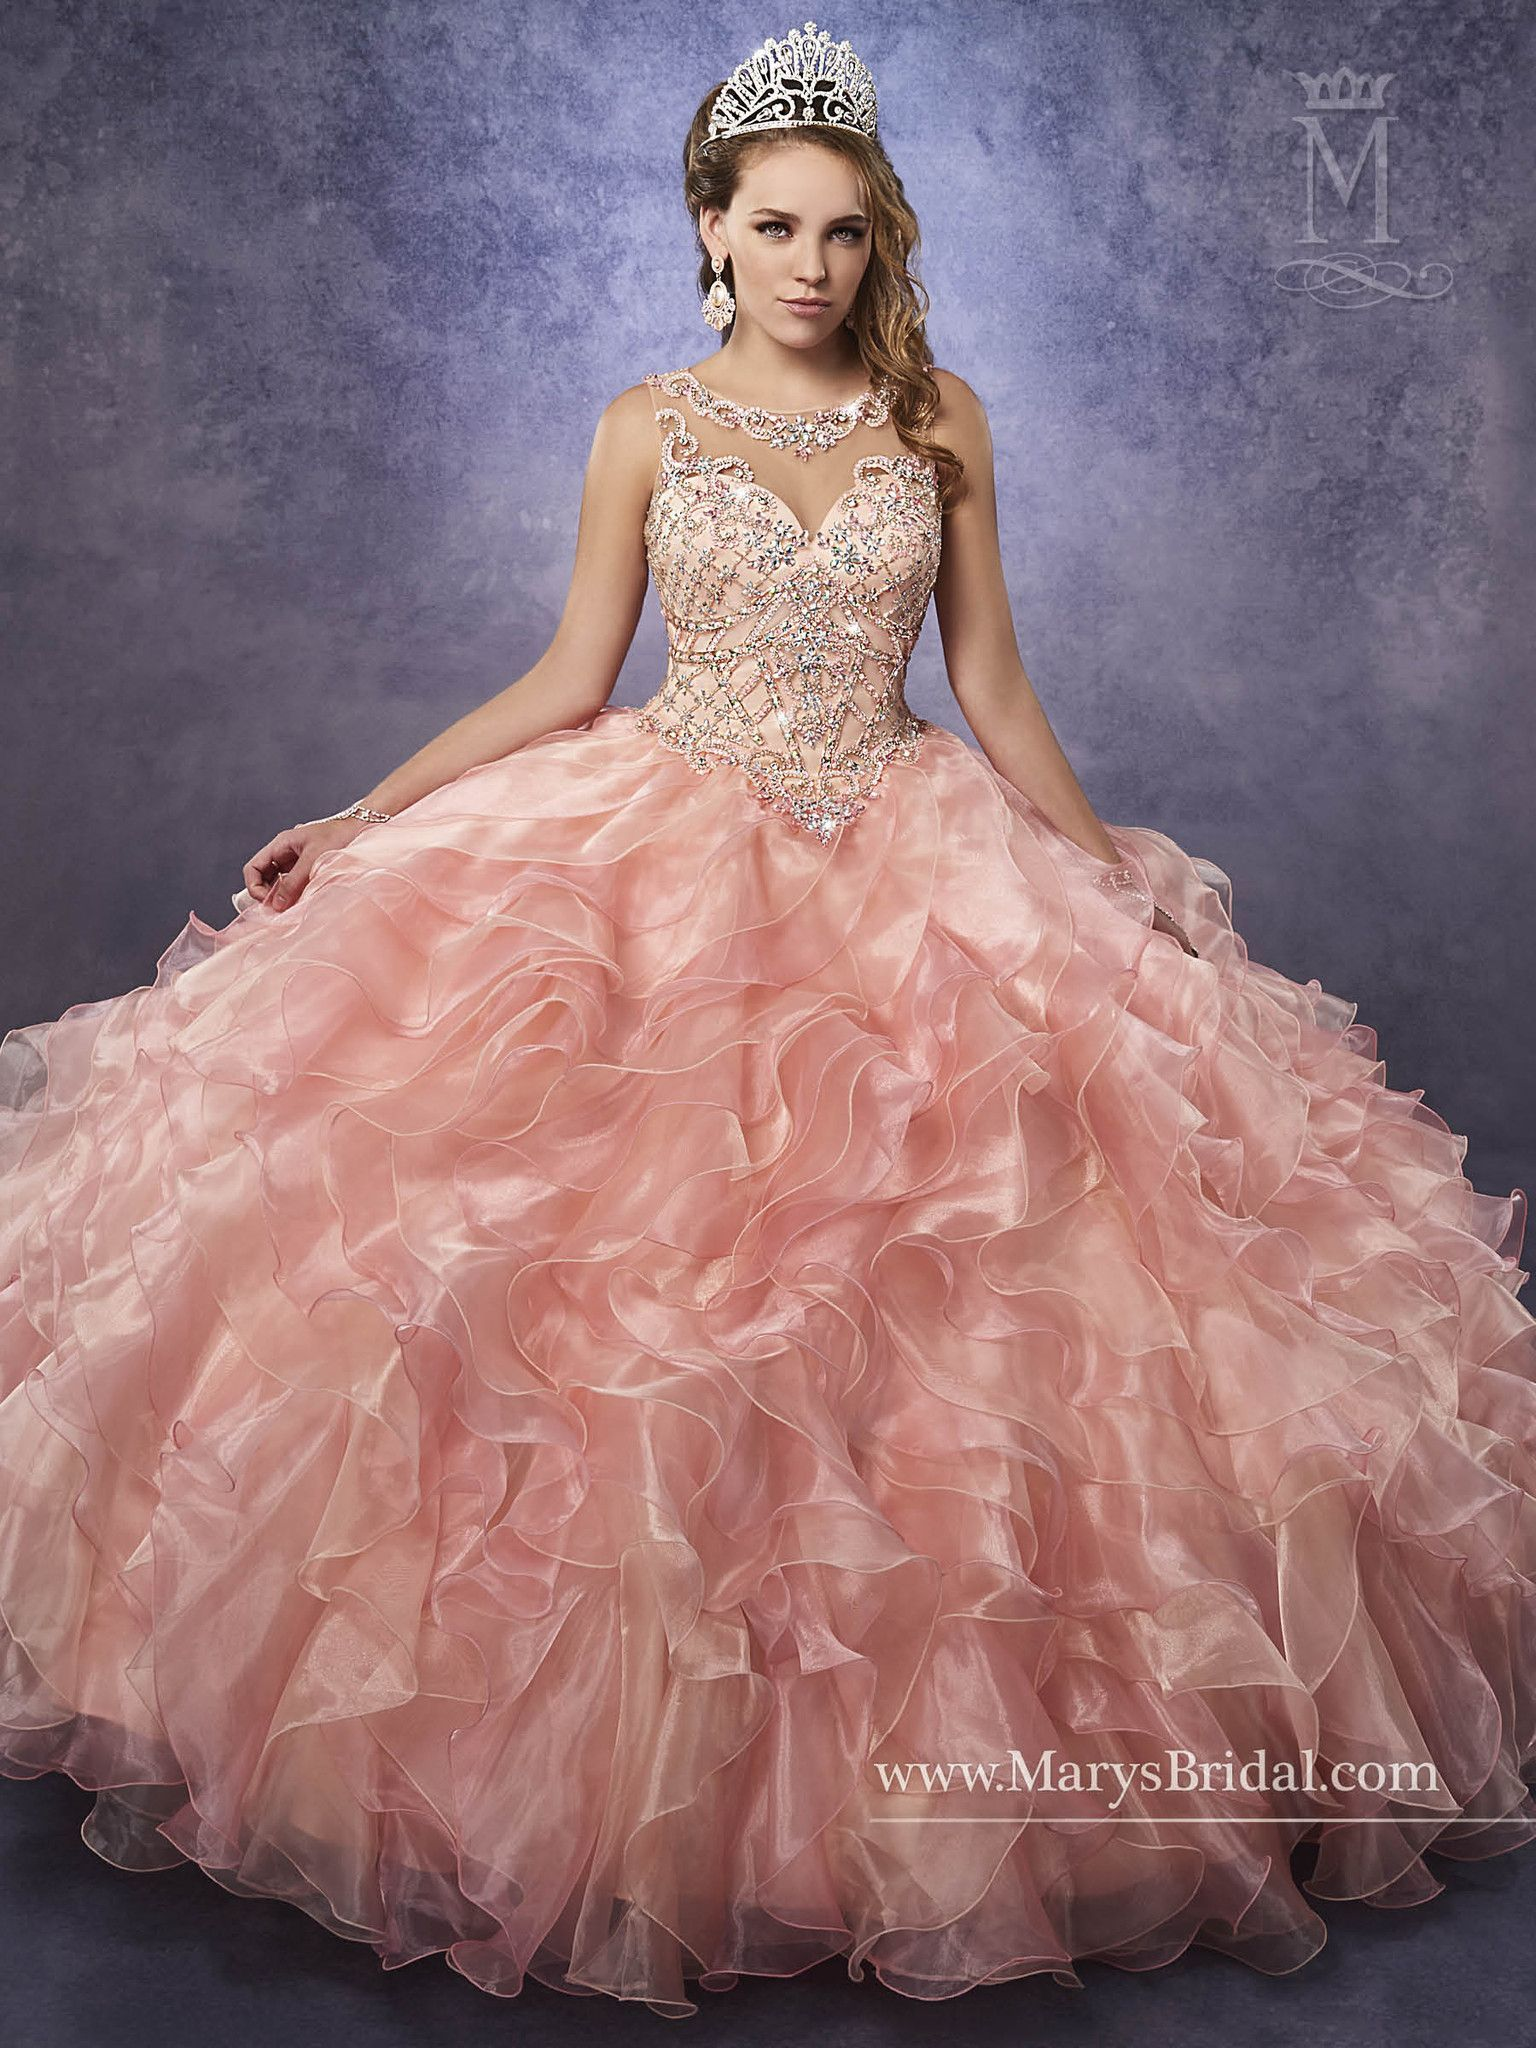 Mary\'s Bridal Princess Collection Quinceanera Dress Style 4Q483 ...